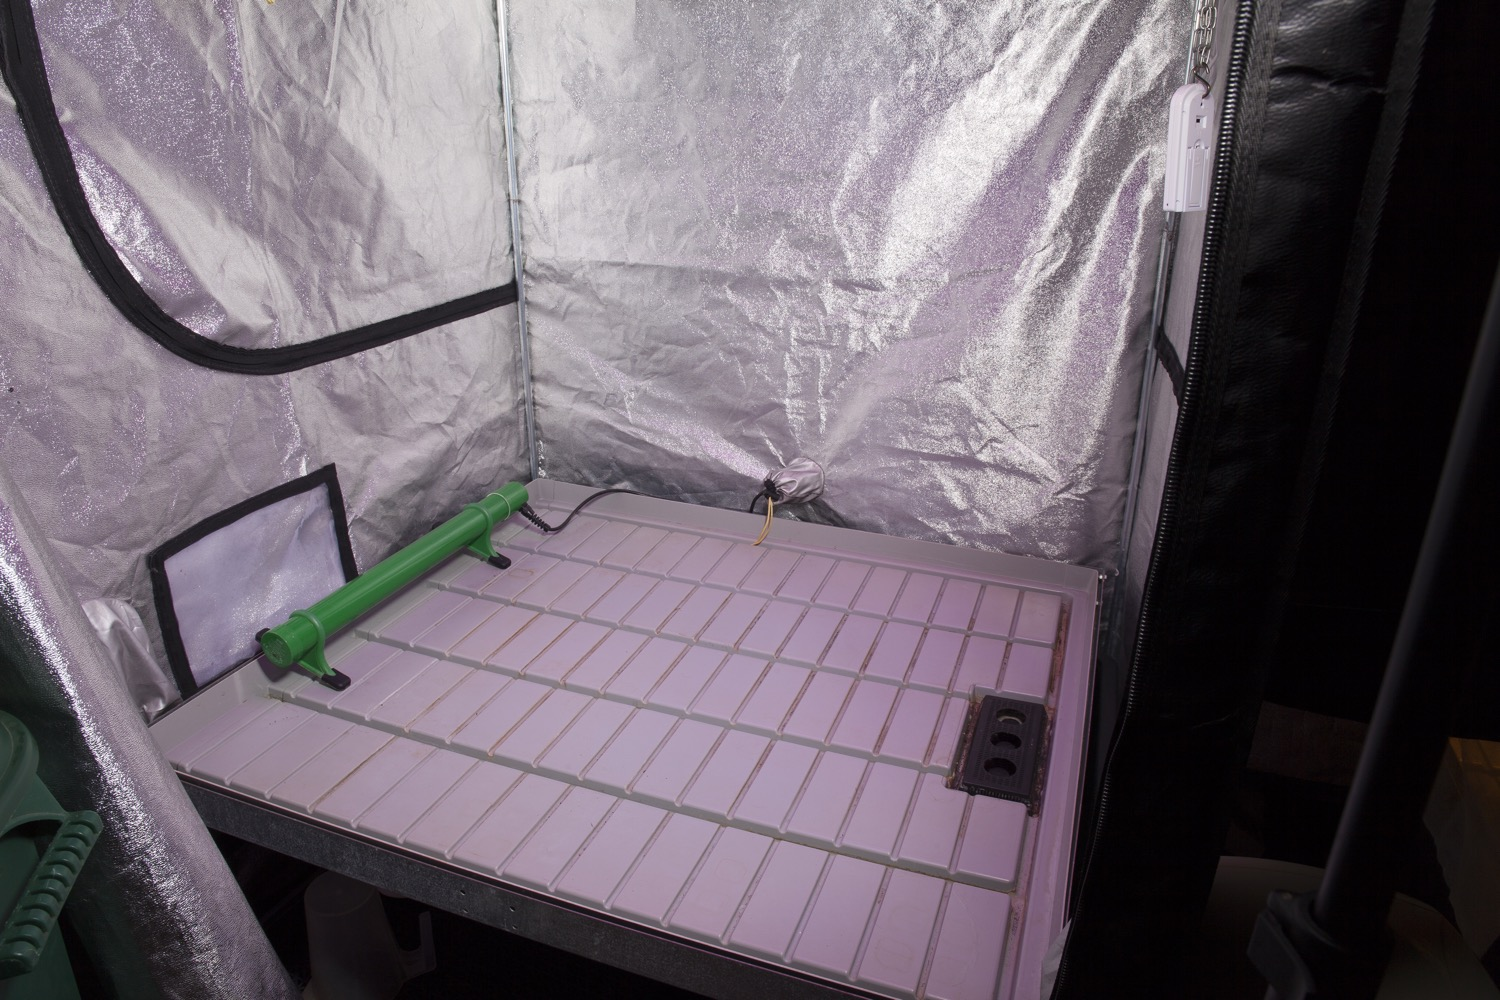 This grow tent is ready to be thoroughly cleaned